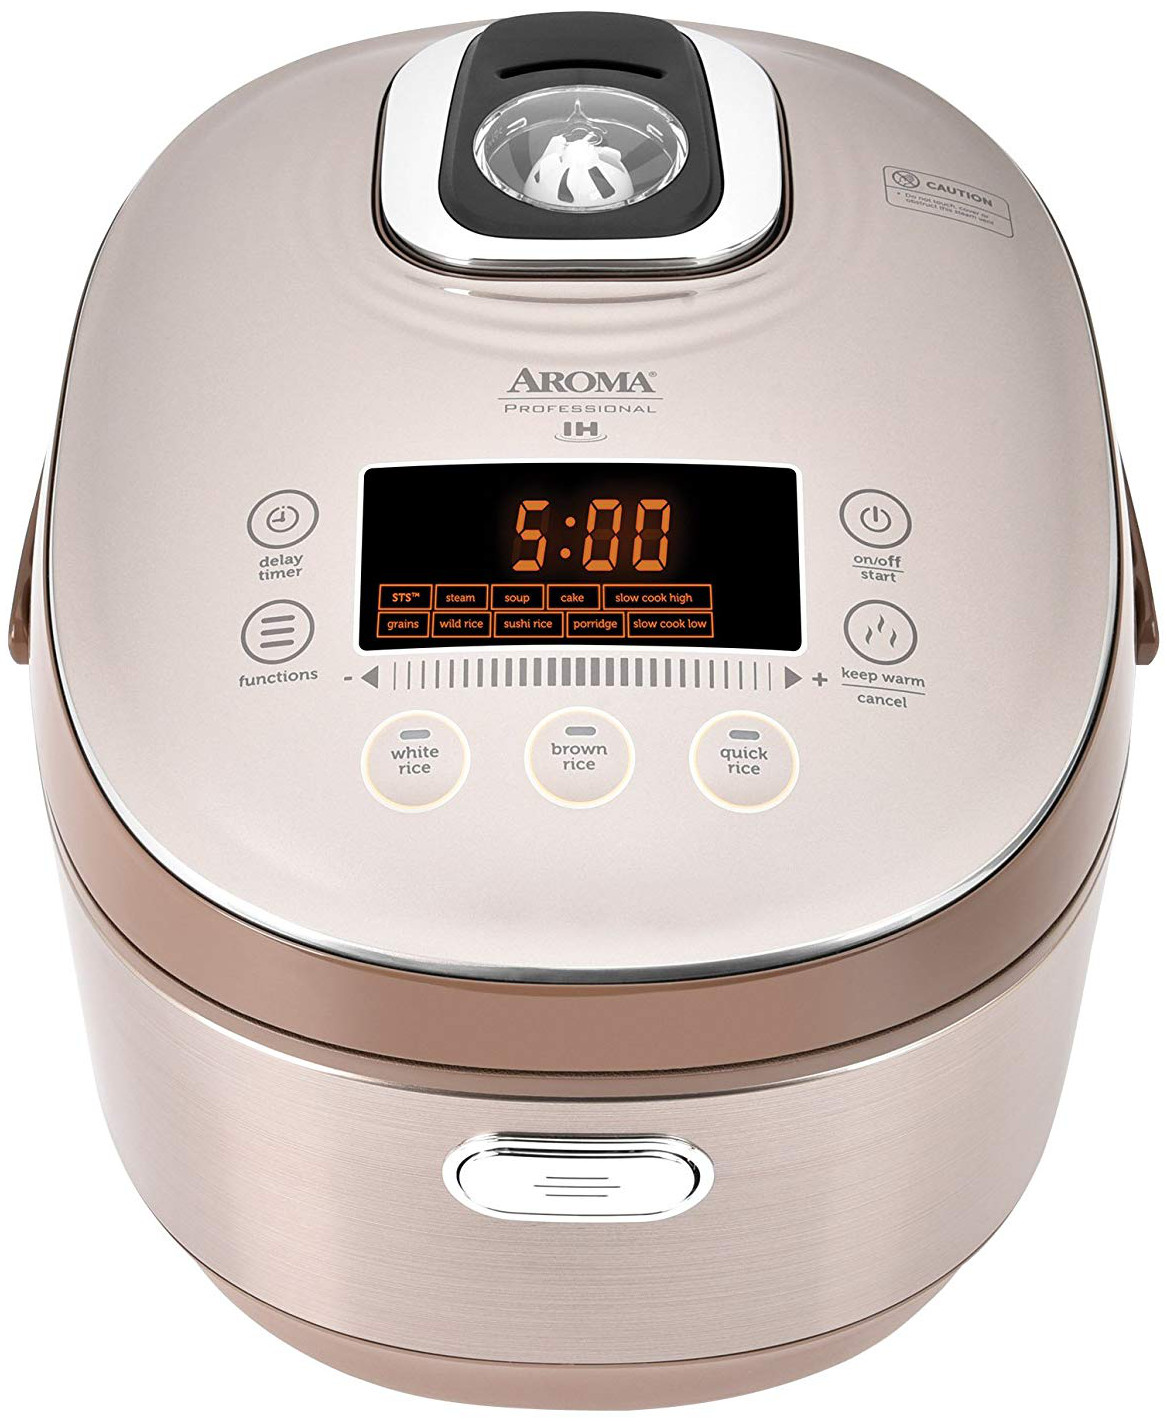 Aroma Pro Rice Cooker